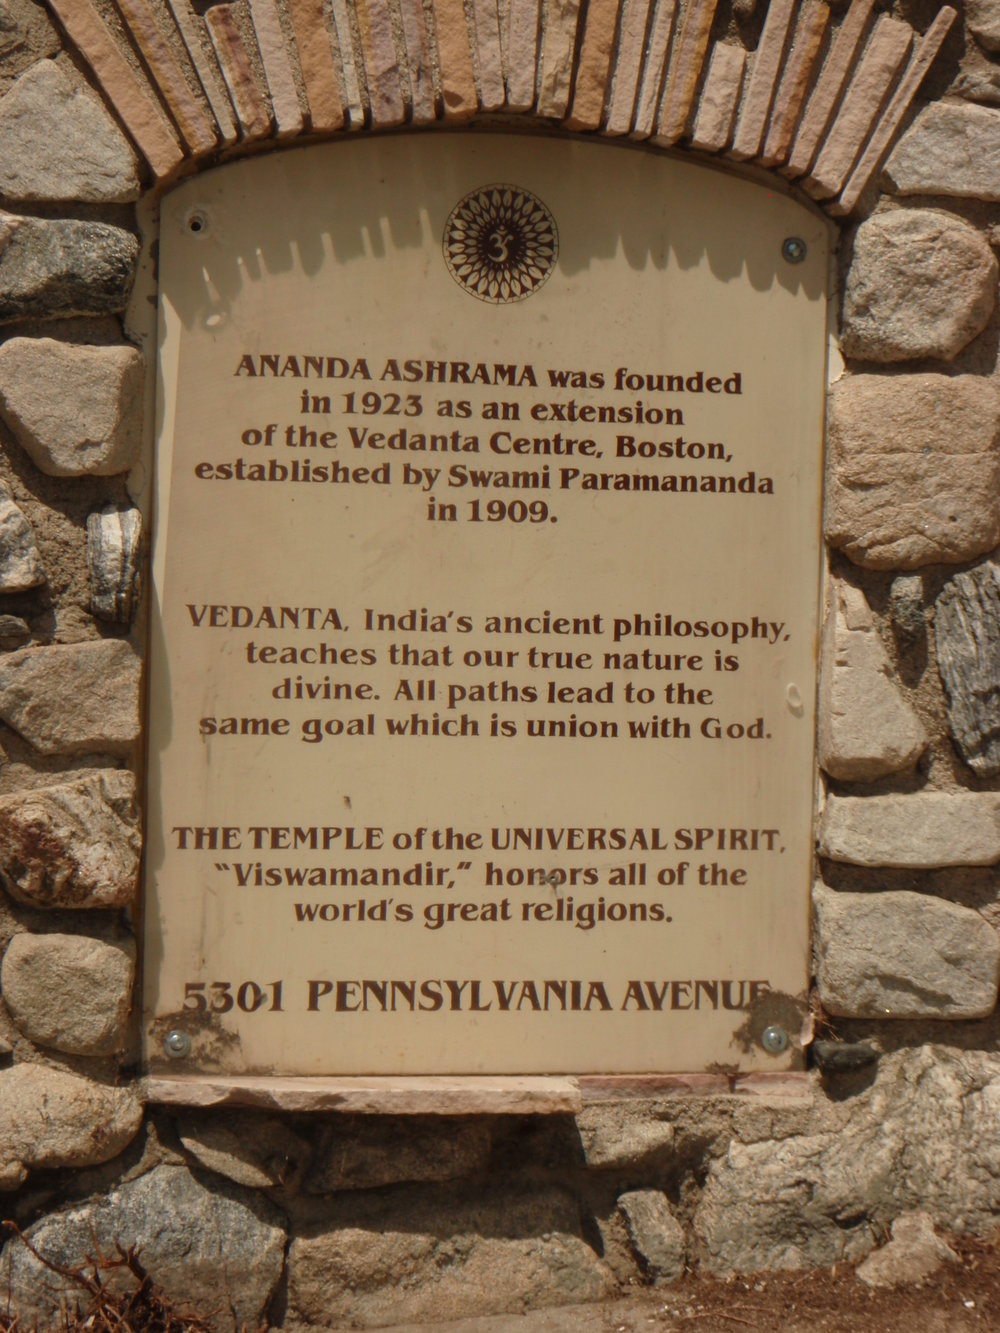 A PLAQUE at the entrance to the Vedanta  Ananda Ashrama  in La Crescenta, CA, where Agnes Baron was living when she first heard about Avatar Meher Baba. This Ashrama was next to the New Life Center where Jean Adriel was working on her book,  Avatar, The Life Story of the Perfect Master Meher Baba , published in 1947. (Photo: Sam Ervin, 2012)